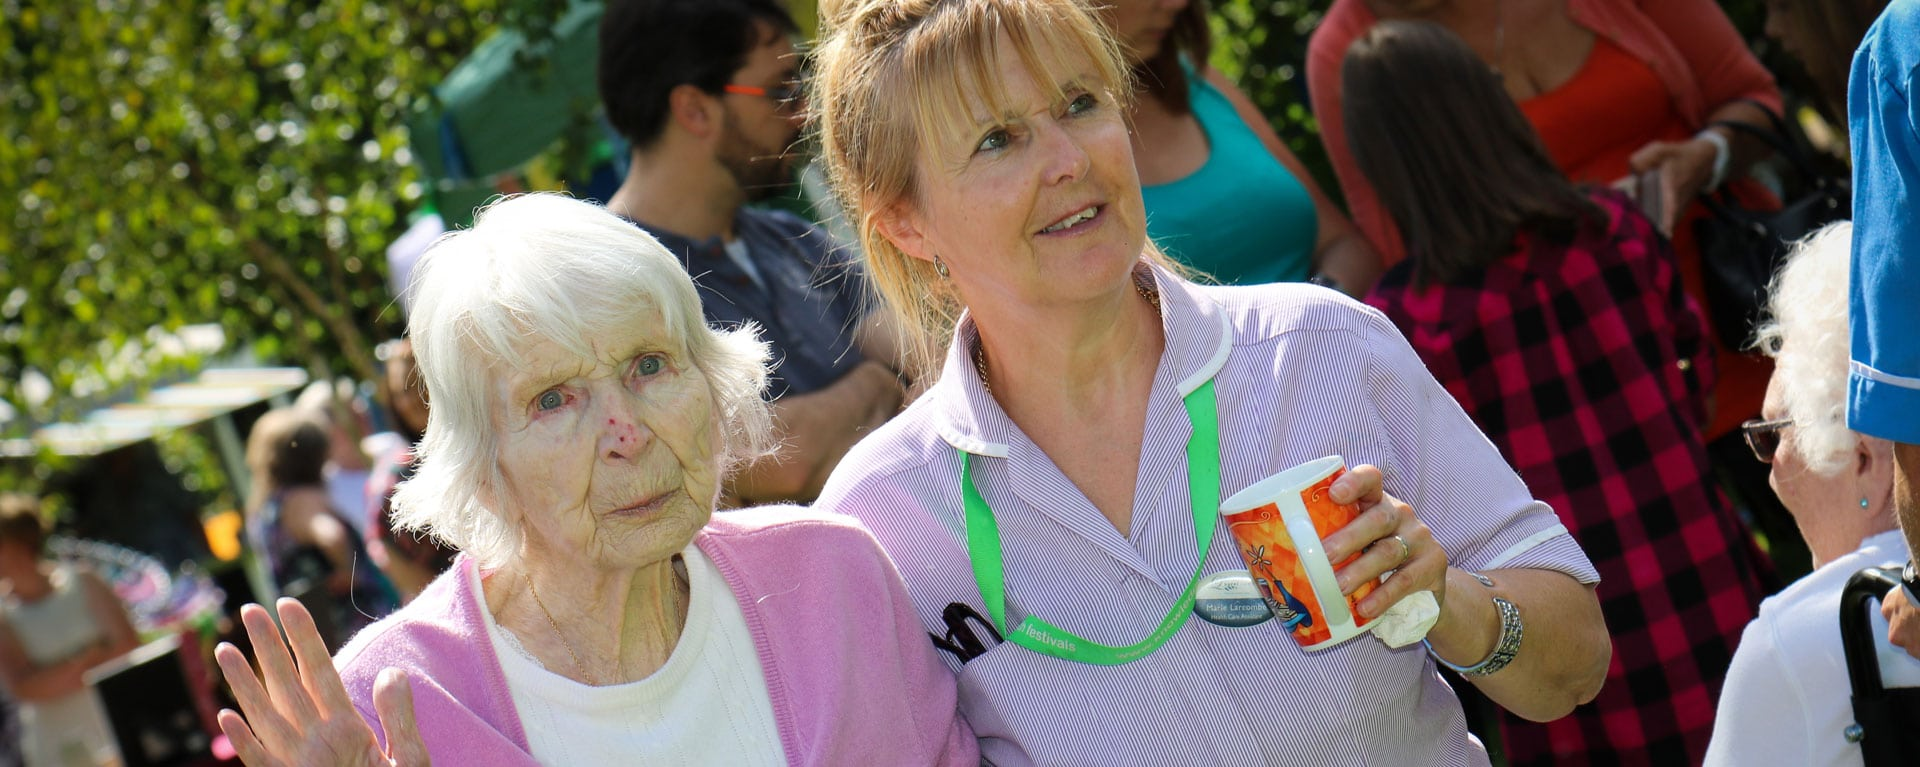 Laurel Care Home nurse with a resident in the garden